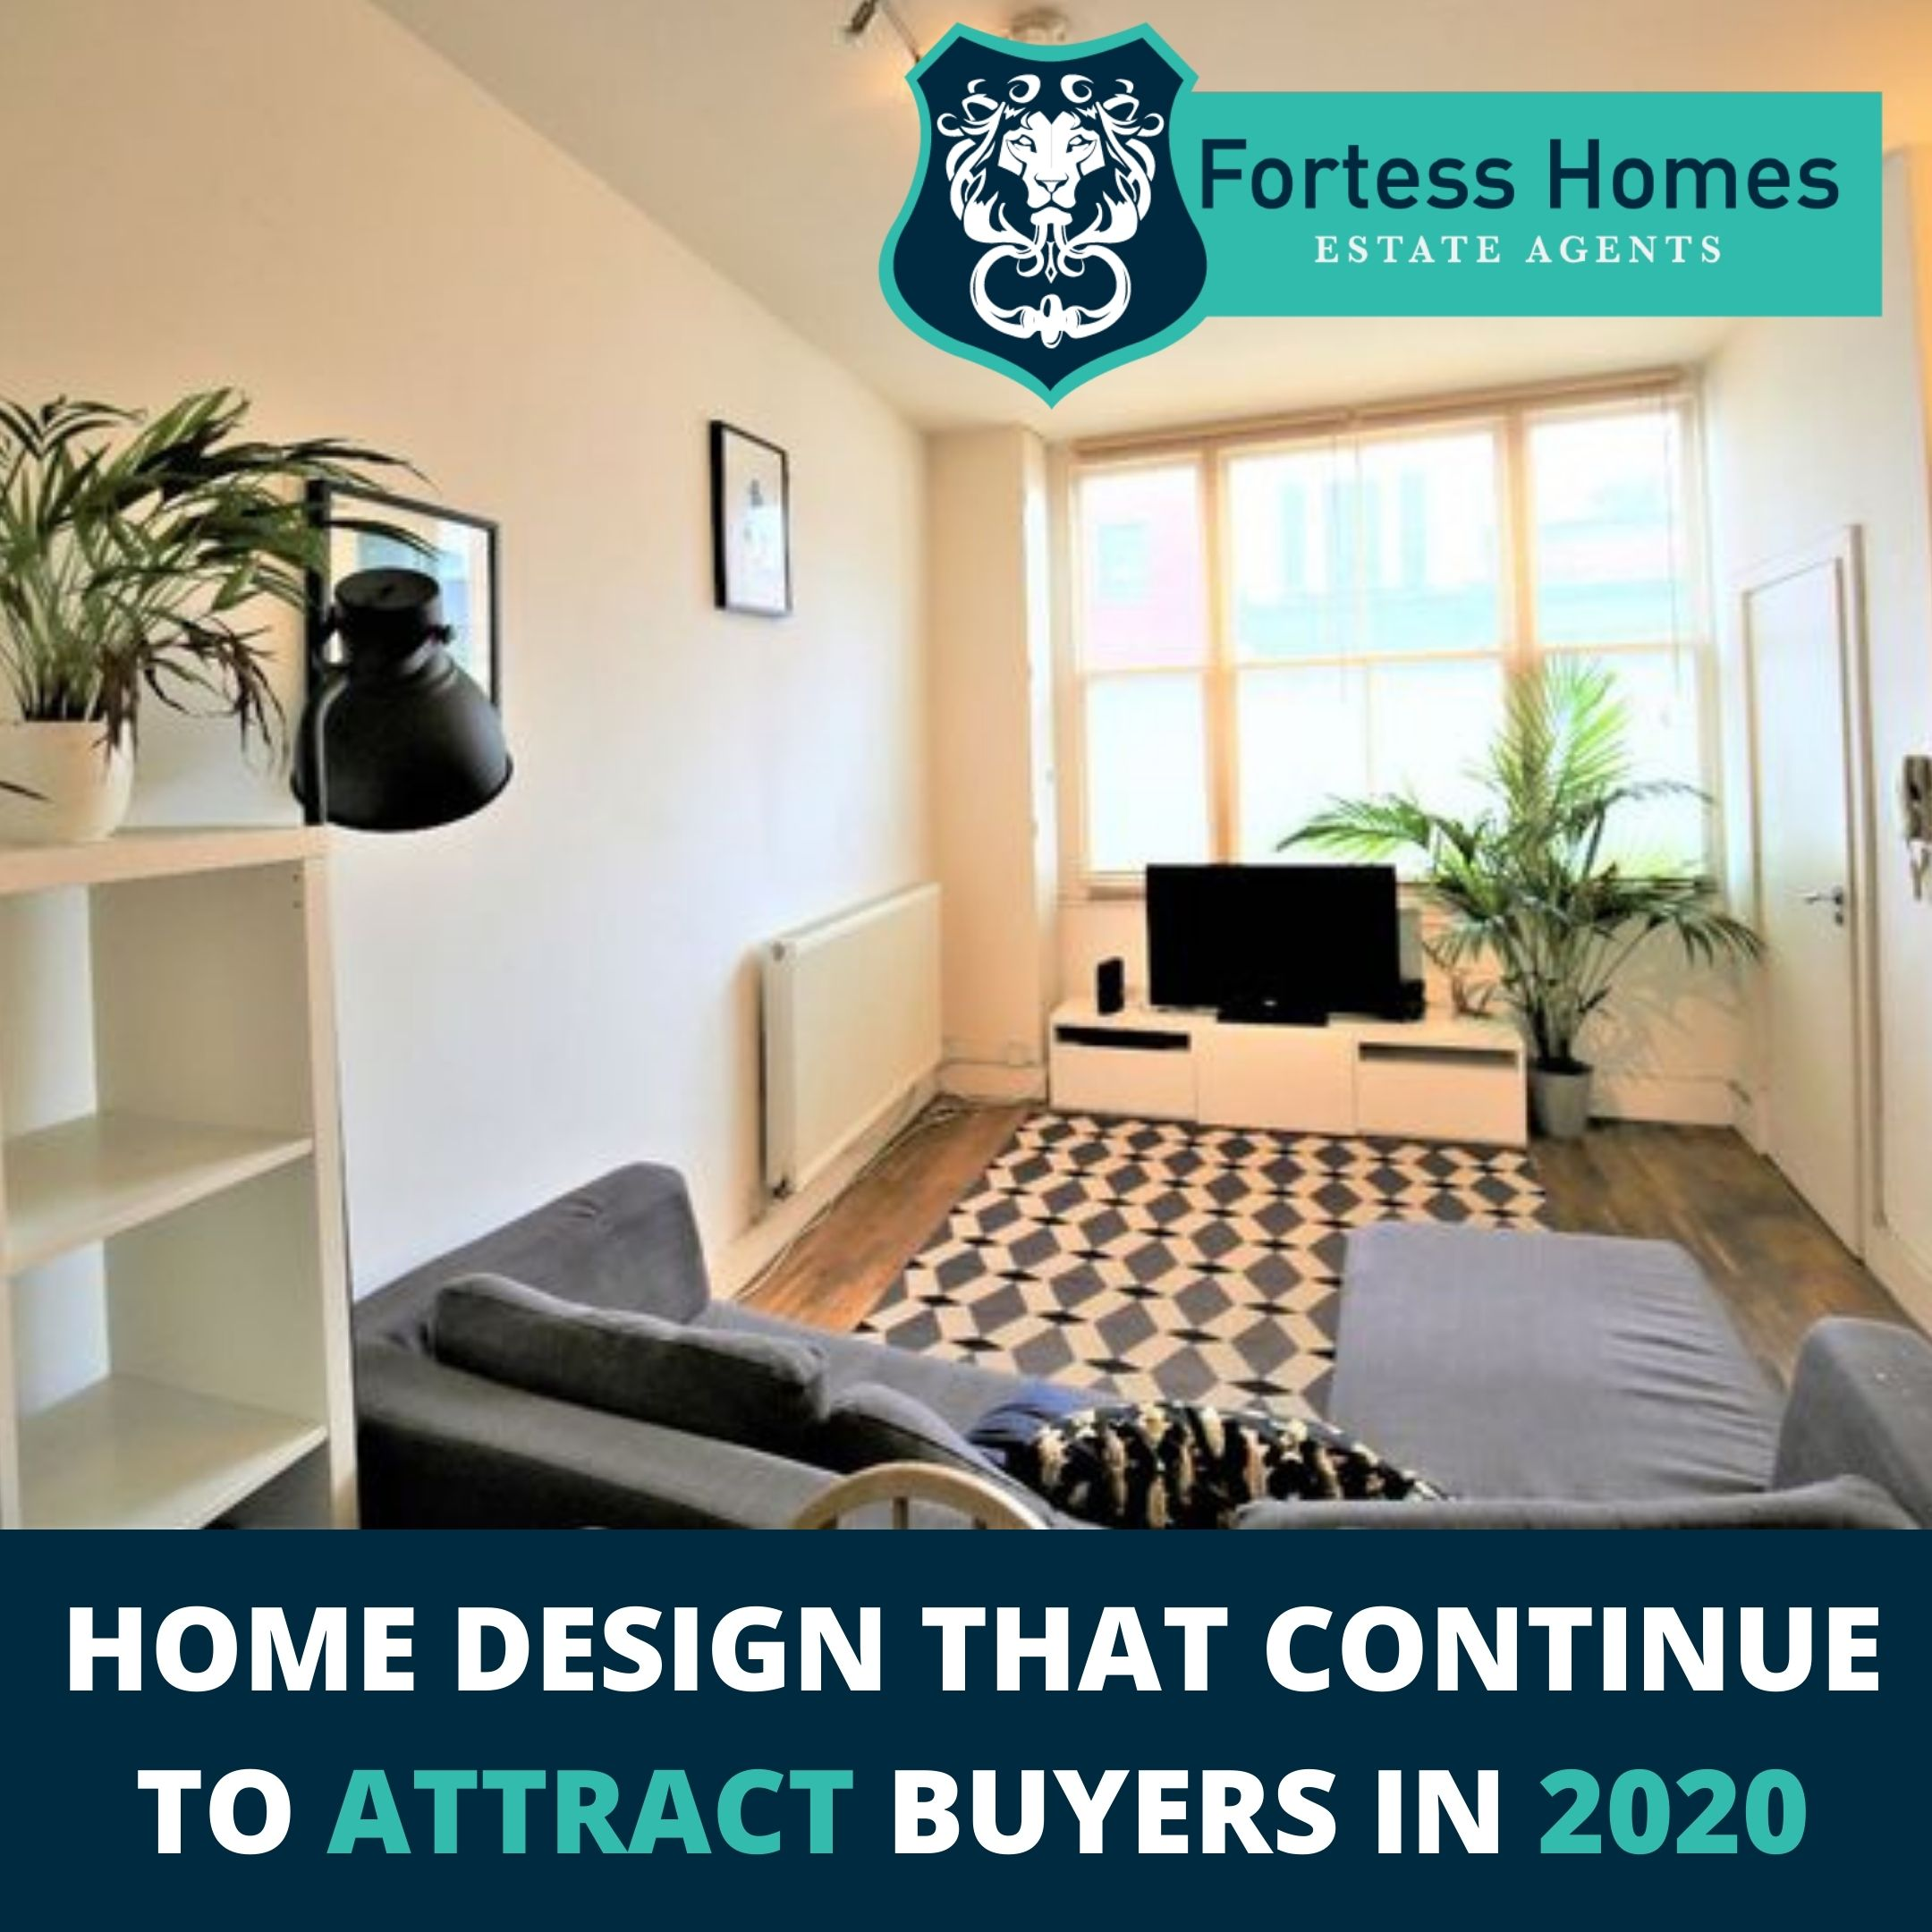 HOME DESIGN THAT CONTINUE TO ATTRACT BUYERS IN 2020